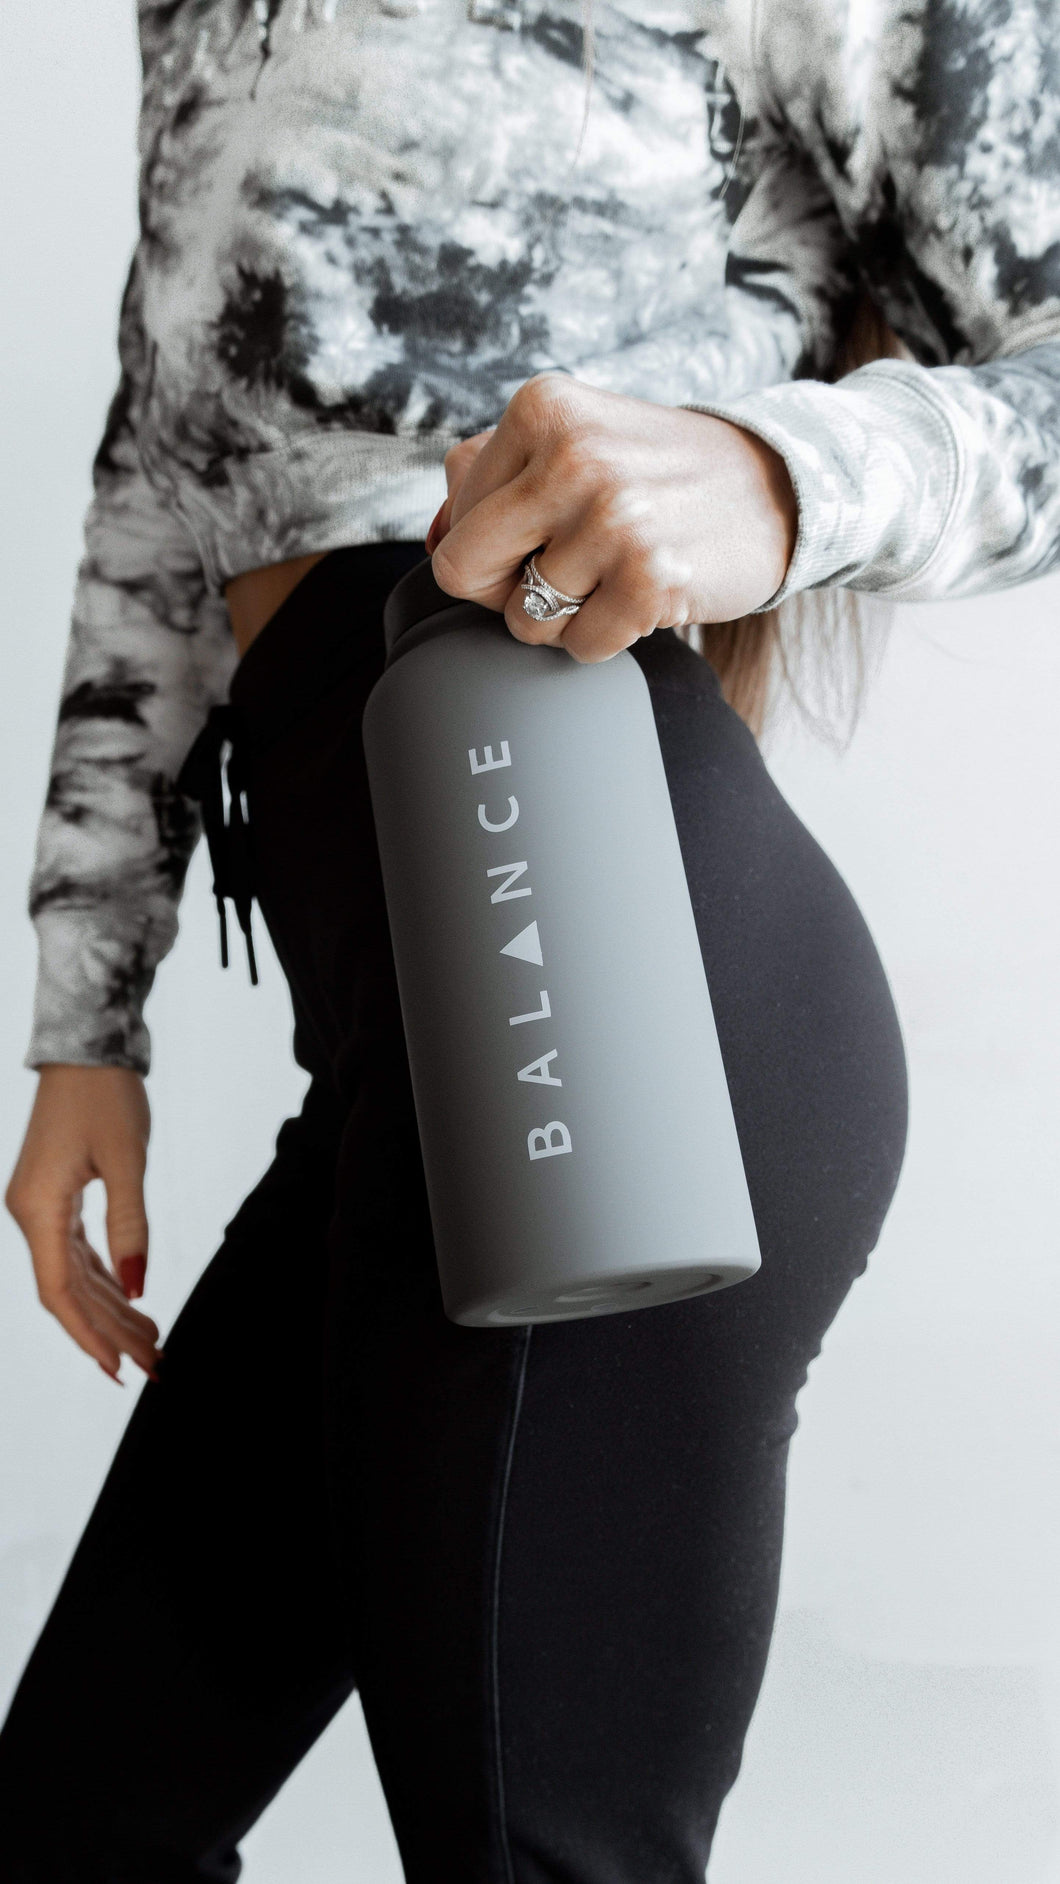 Balance Athletica Water Bottle The Element Bottle - Smoke 105S